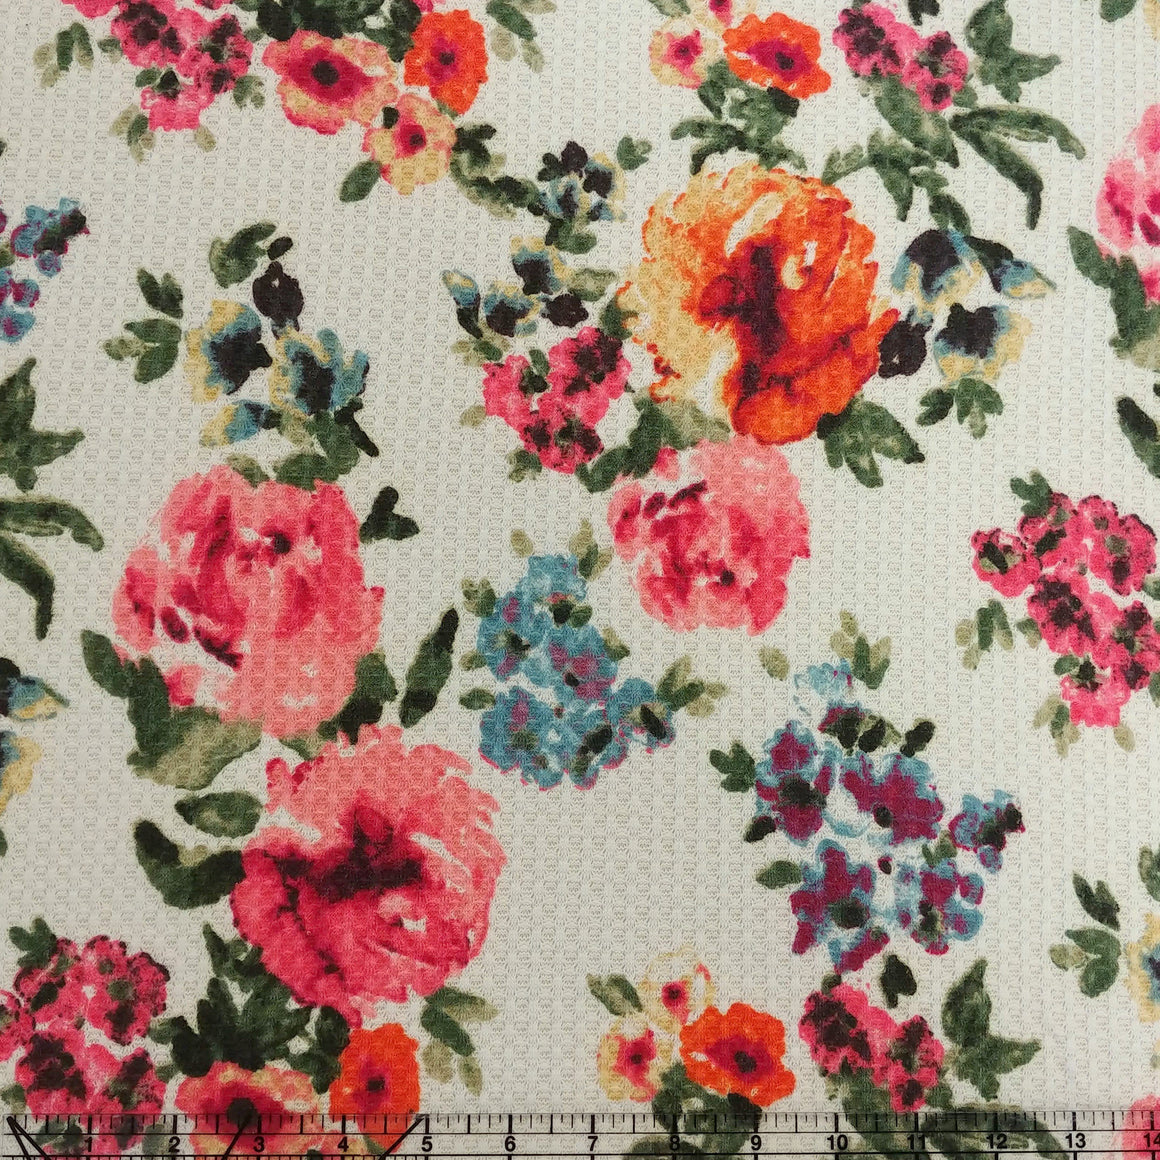 Off White Salmon Olive Orange Mustard and Blue Floral Waffle Knit Fabric - Raspberry Creek Fabrics